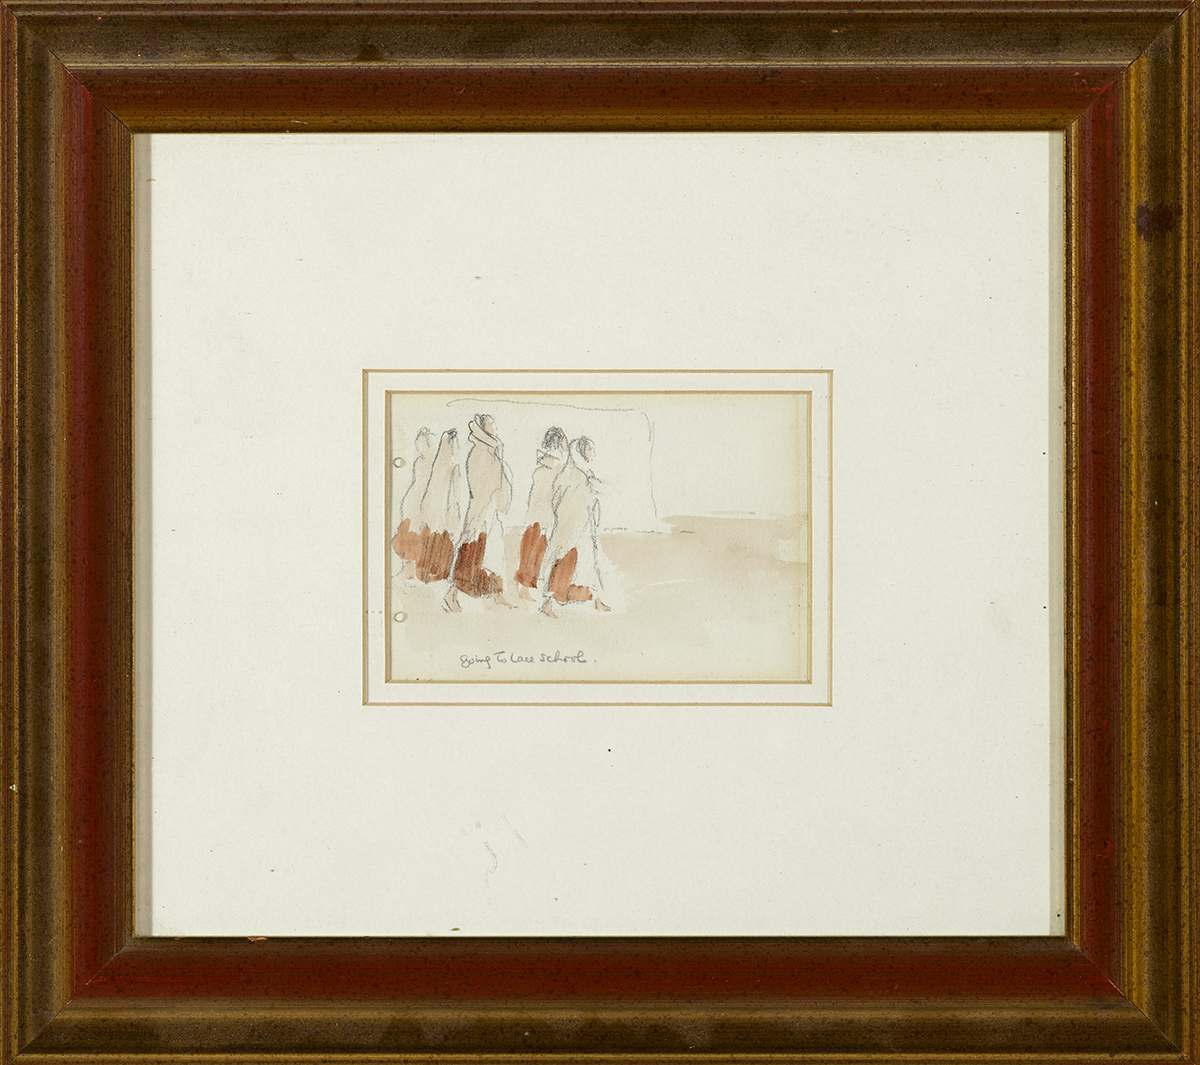 Lot 32 - Jack Butler Yeats RHA (1871-1957)GOING TO LACE SCHOOL pencil and wash titled lower left 3.25 by 4.